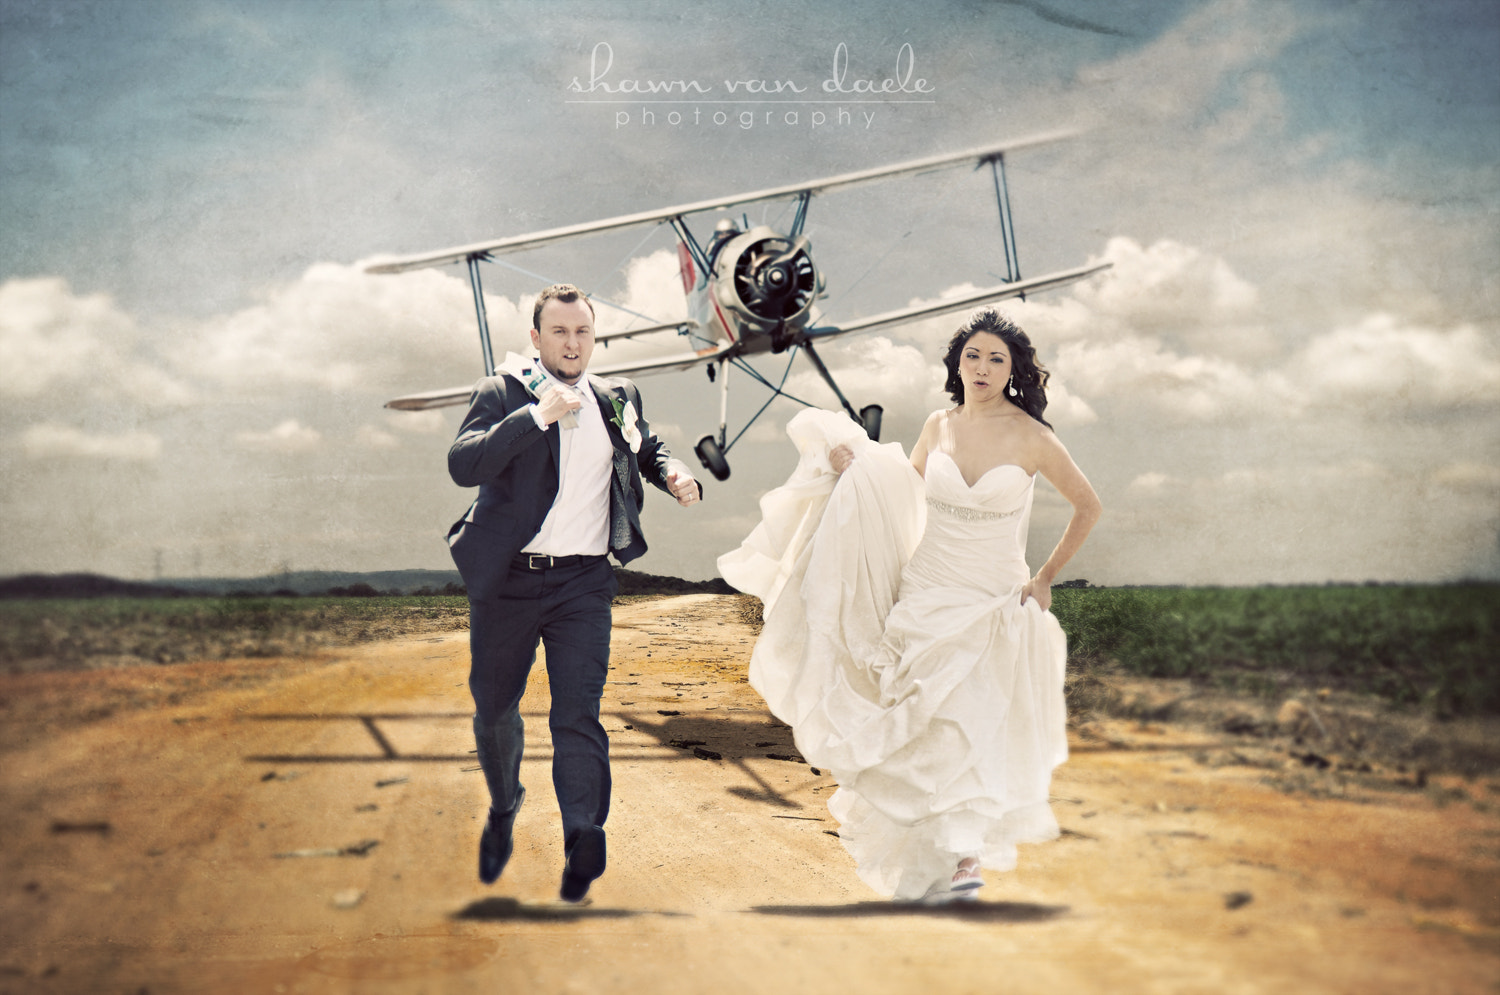 Photograph Not Another Plain Wedding Photo by Shawn Van Daele on 500px